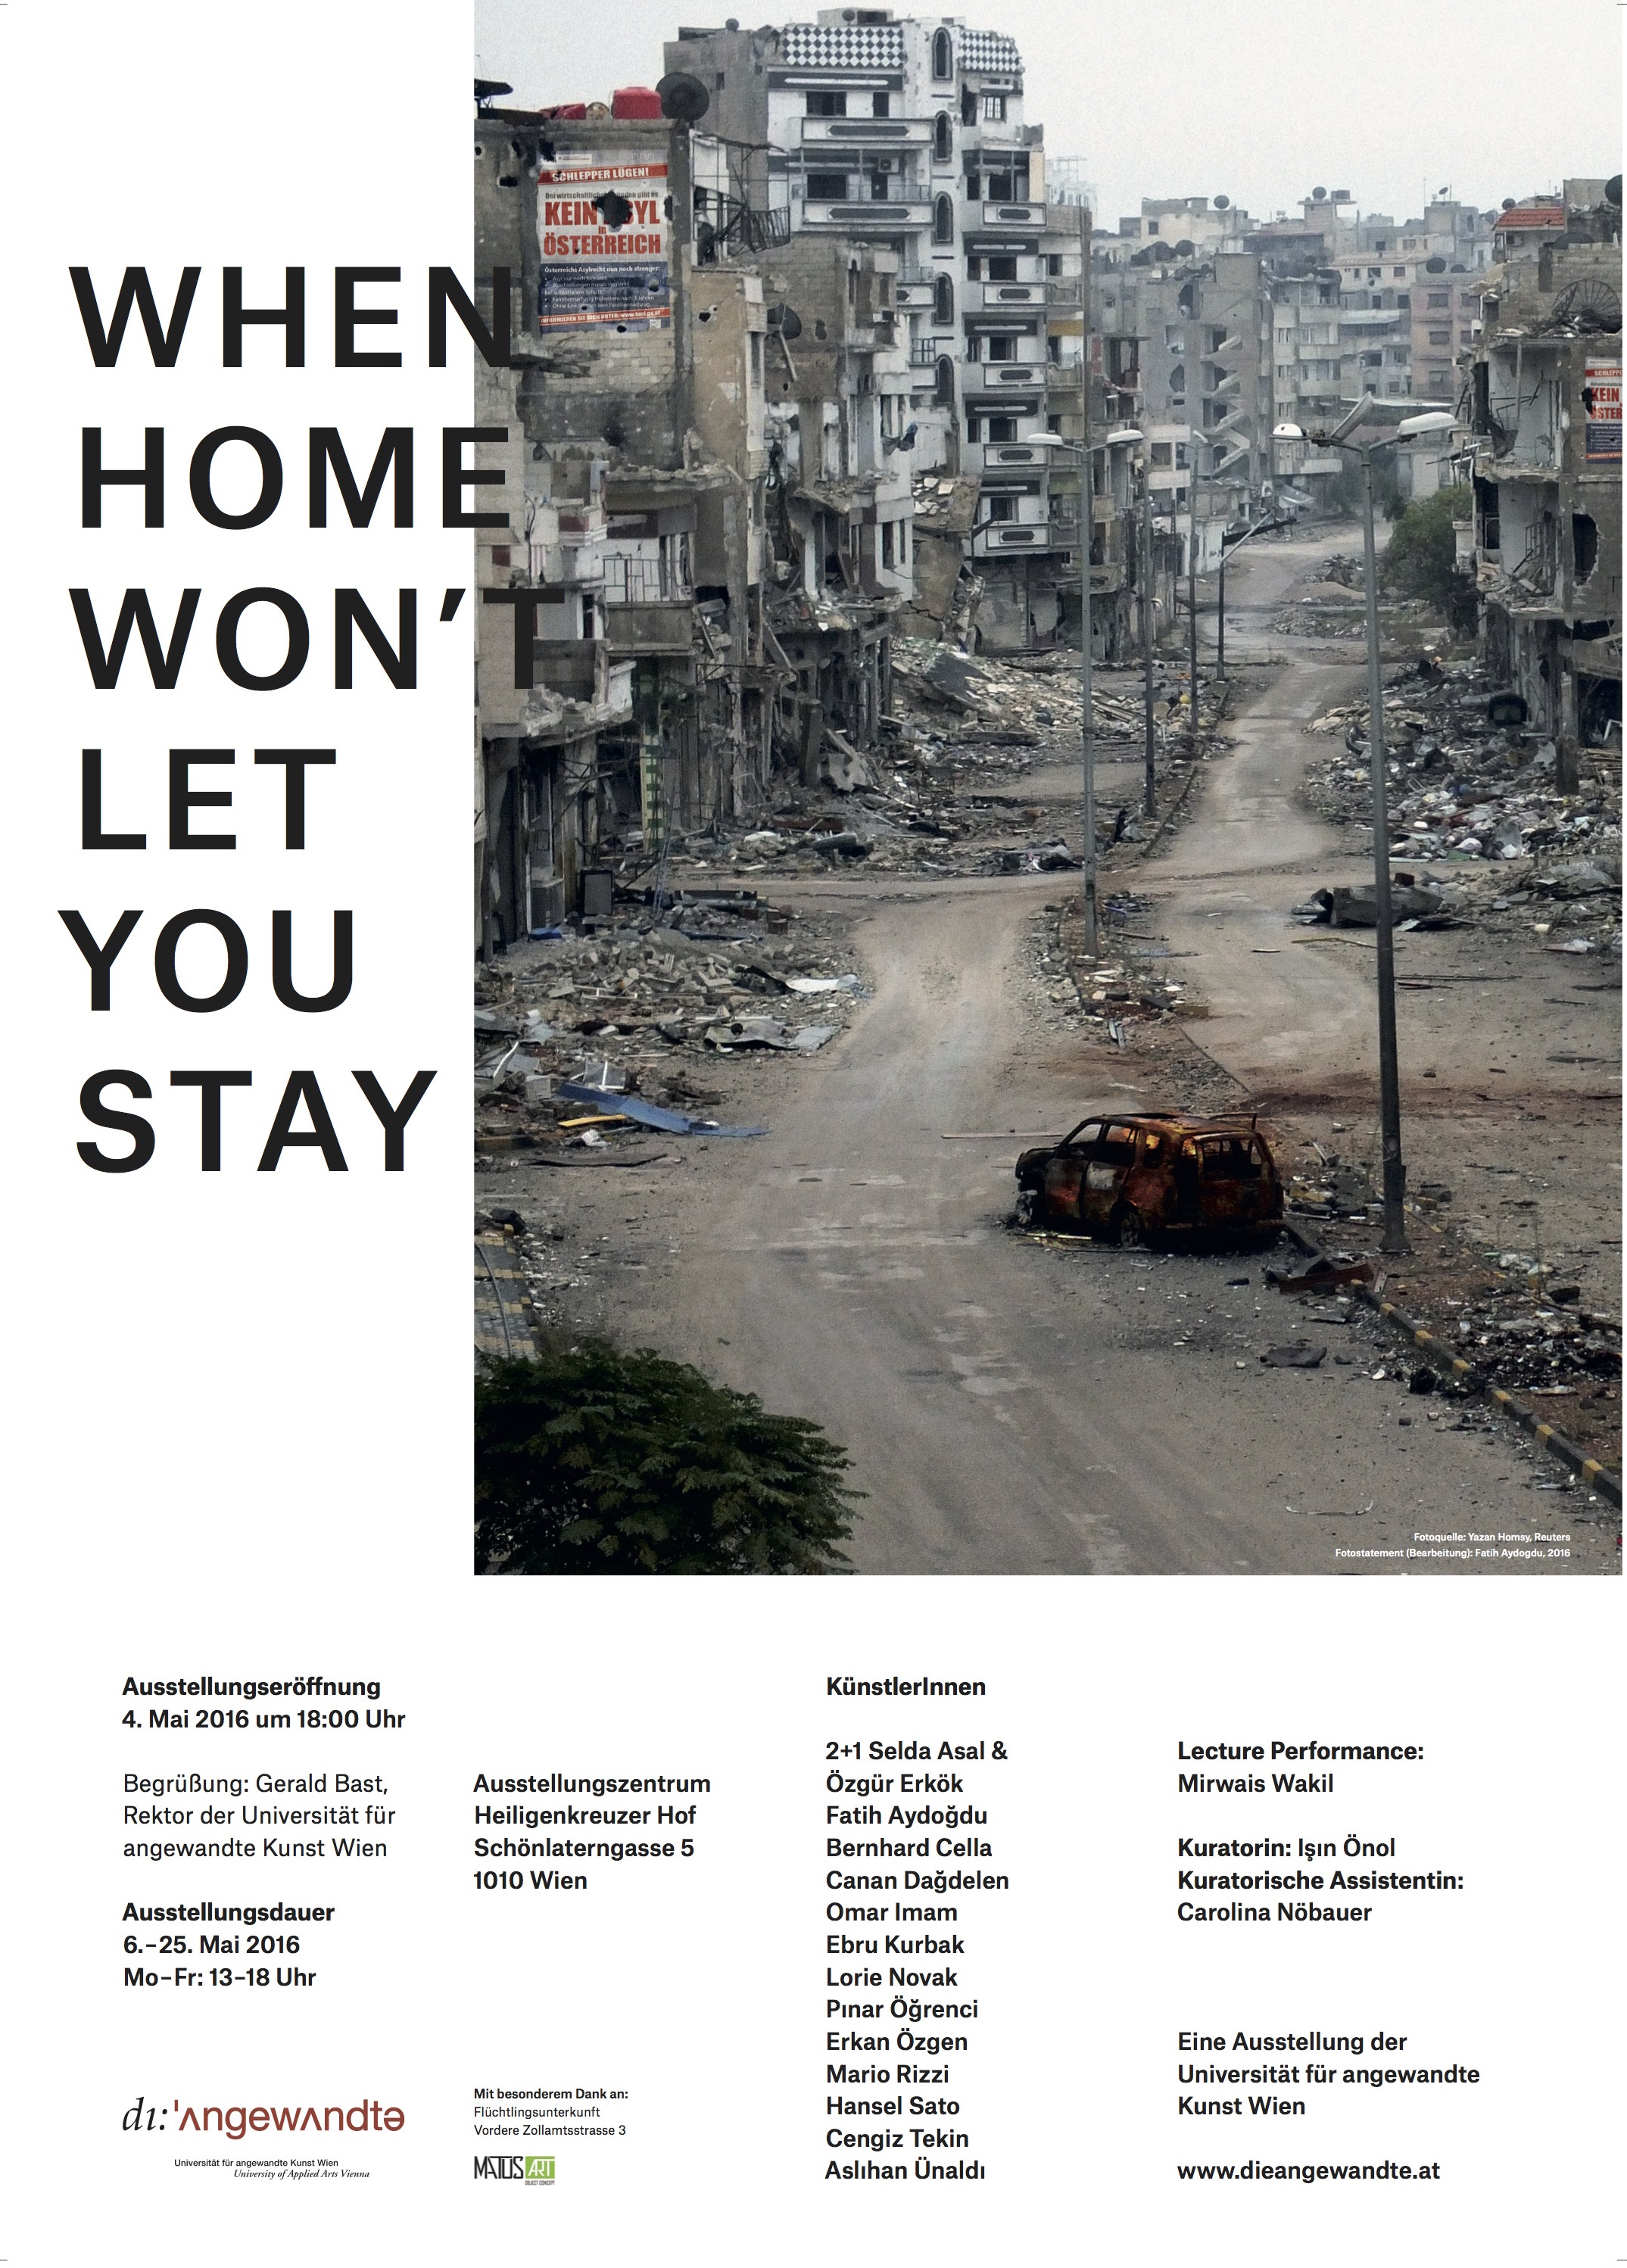 when home won\'t let you stay : Işın Önol